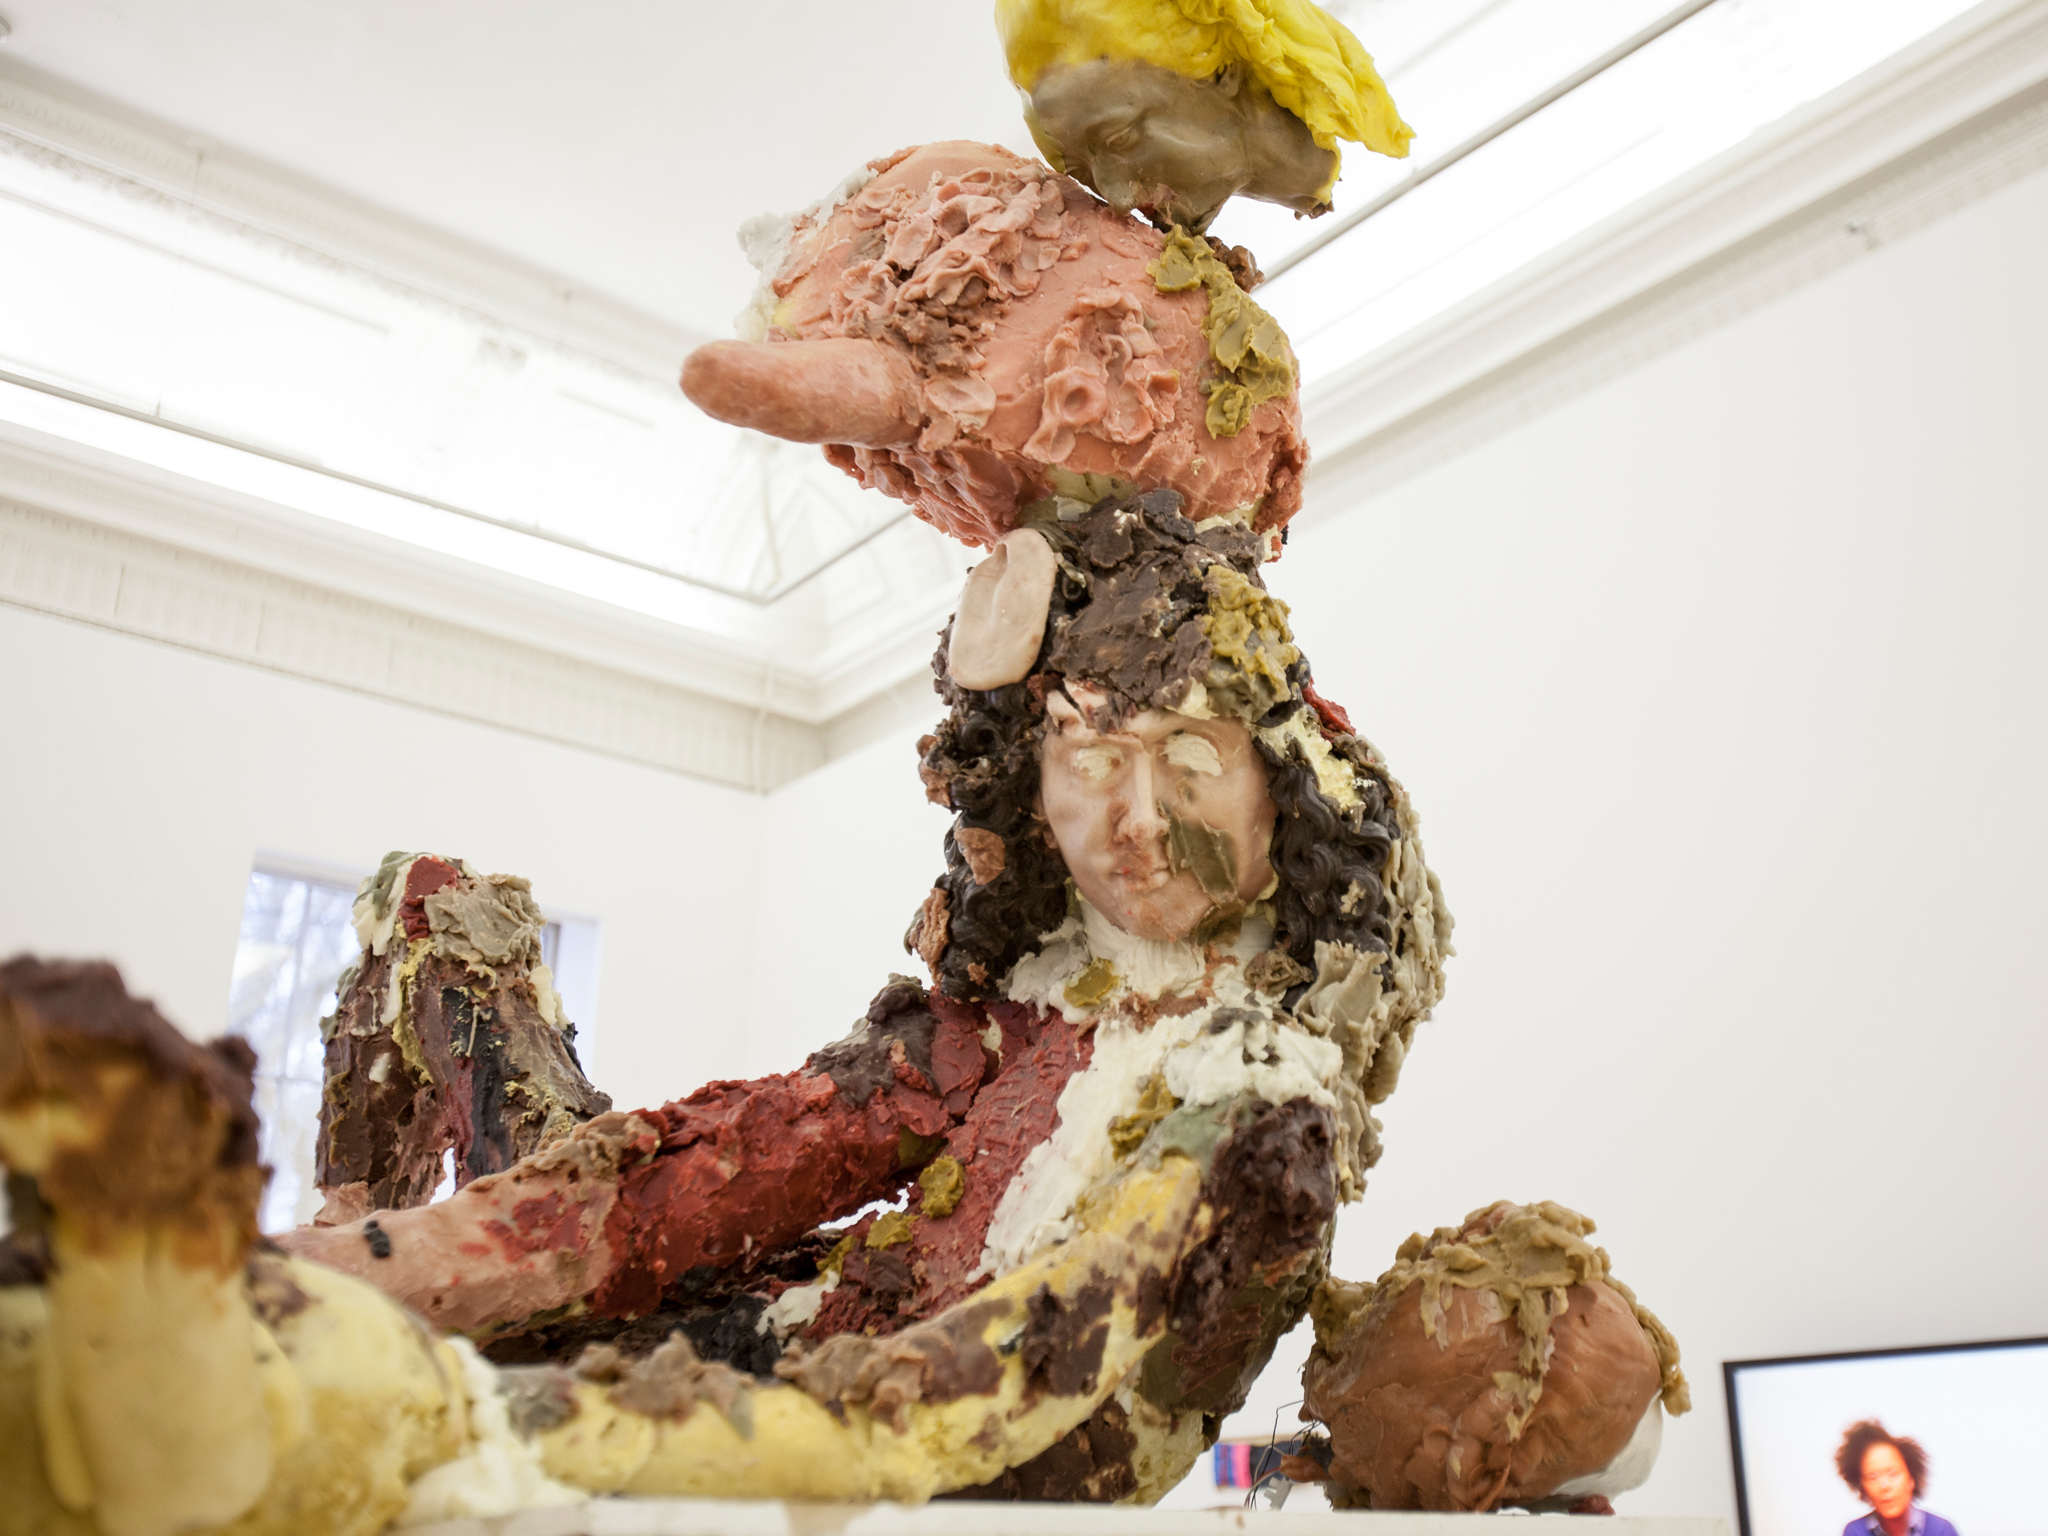 Seven best things to see at Bloomberg New Contemporaries at the ICA